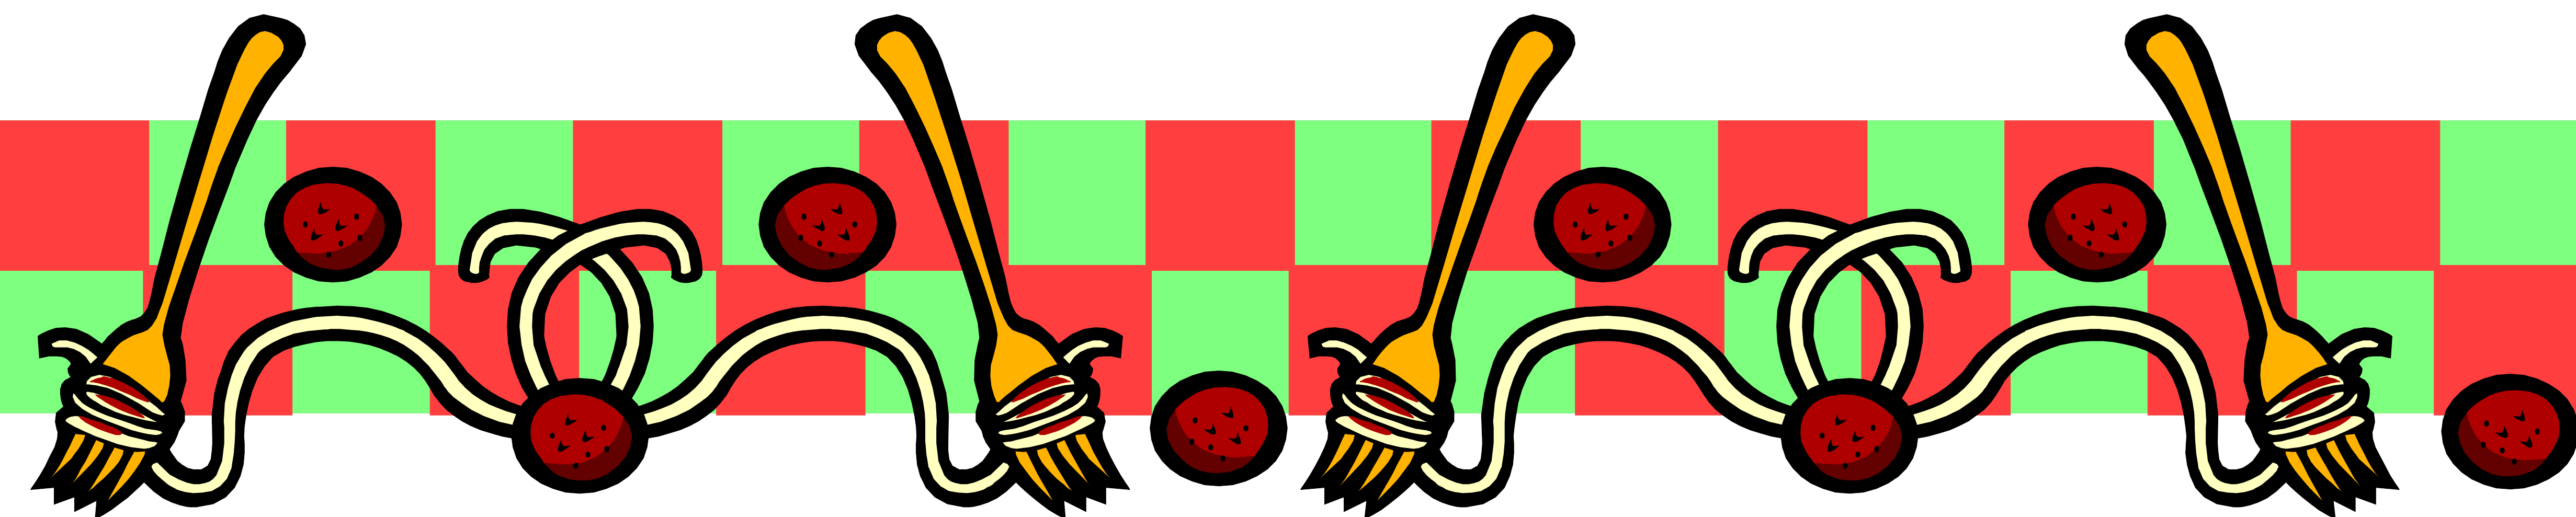 Meatball clipart entree Big Skinny A$$ Ingredients: Meatballs